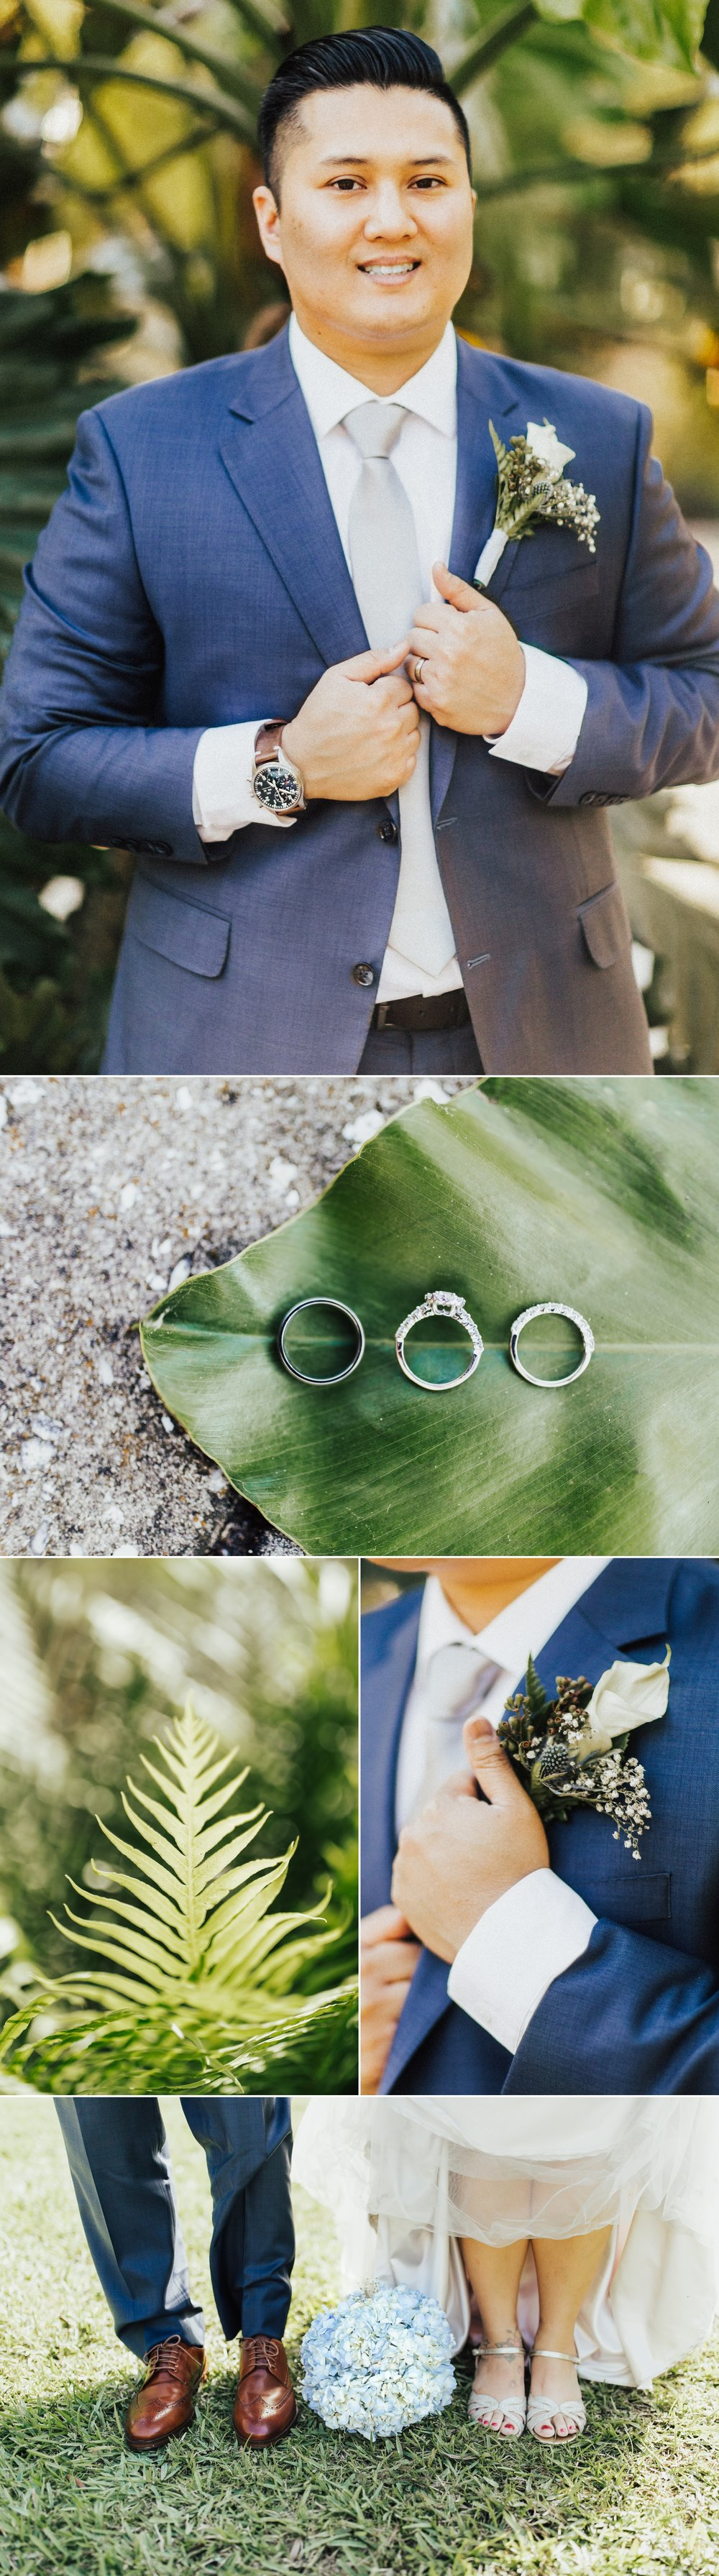 Romantic Leu Gardens Wedding Pictures - Winter Park Wedding Photographer Shaina DeCiryan- Effie+Phillip2.jpg